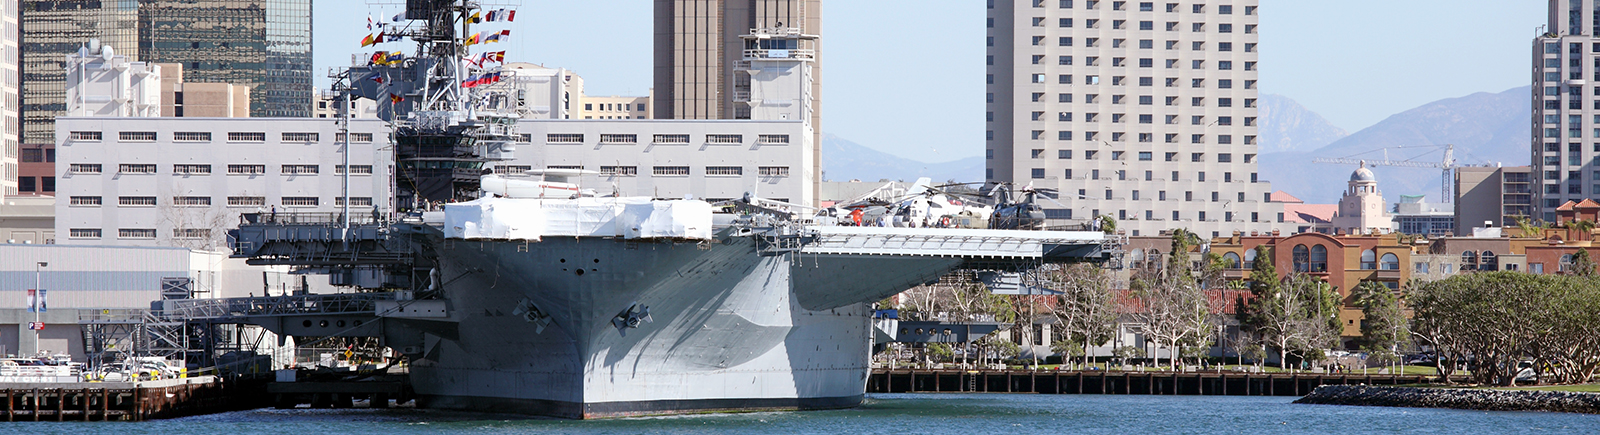 California Hotel USS Midway Museum